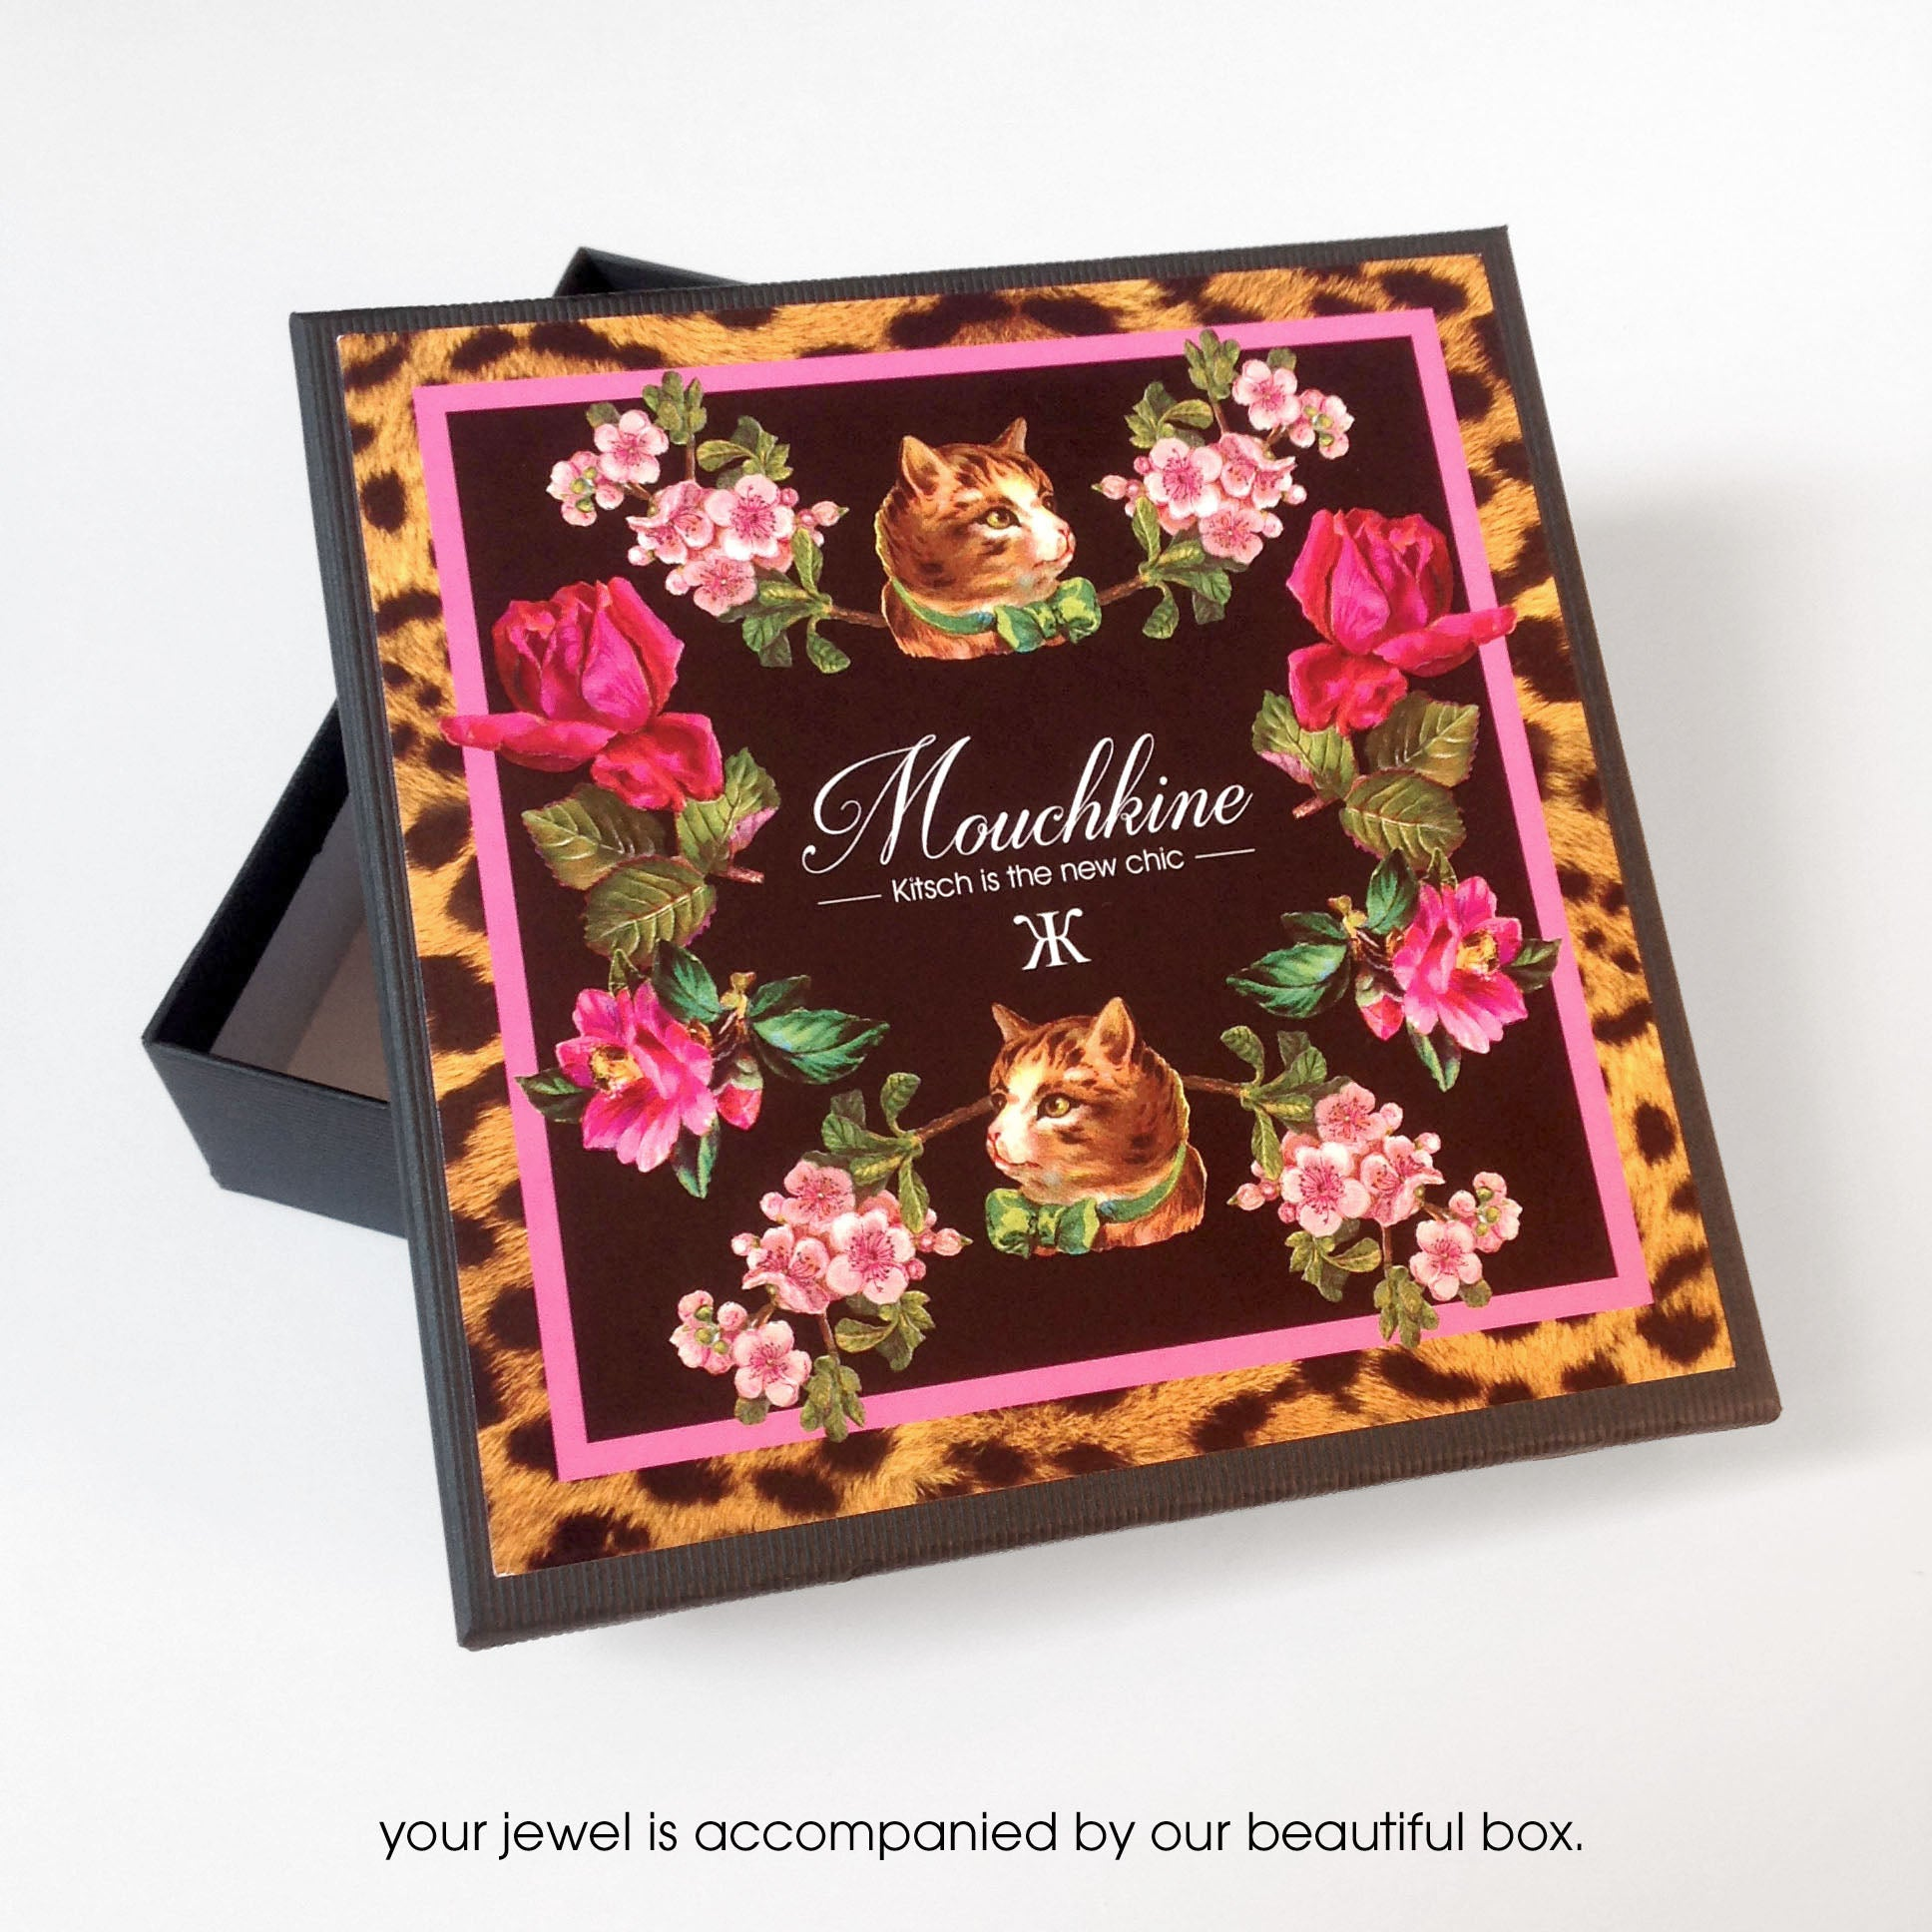 mouchkine jewelry luxury elegant packaging